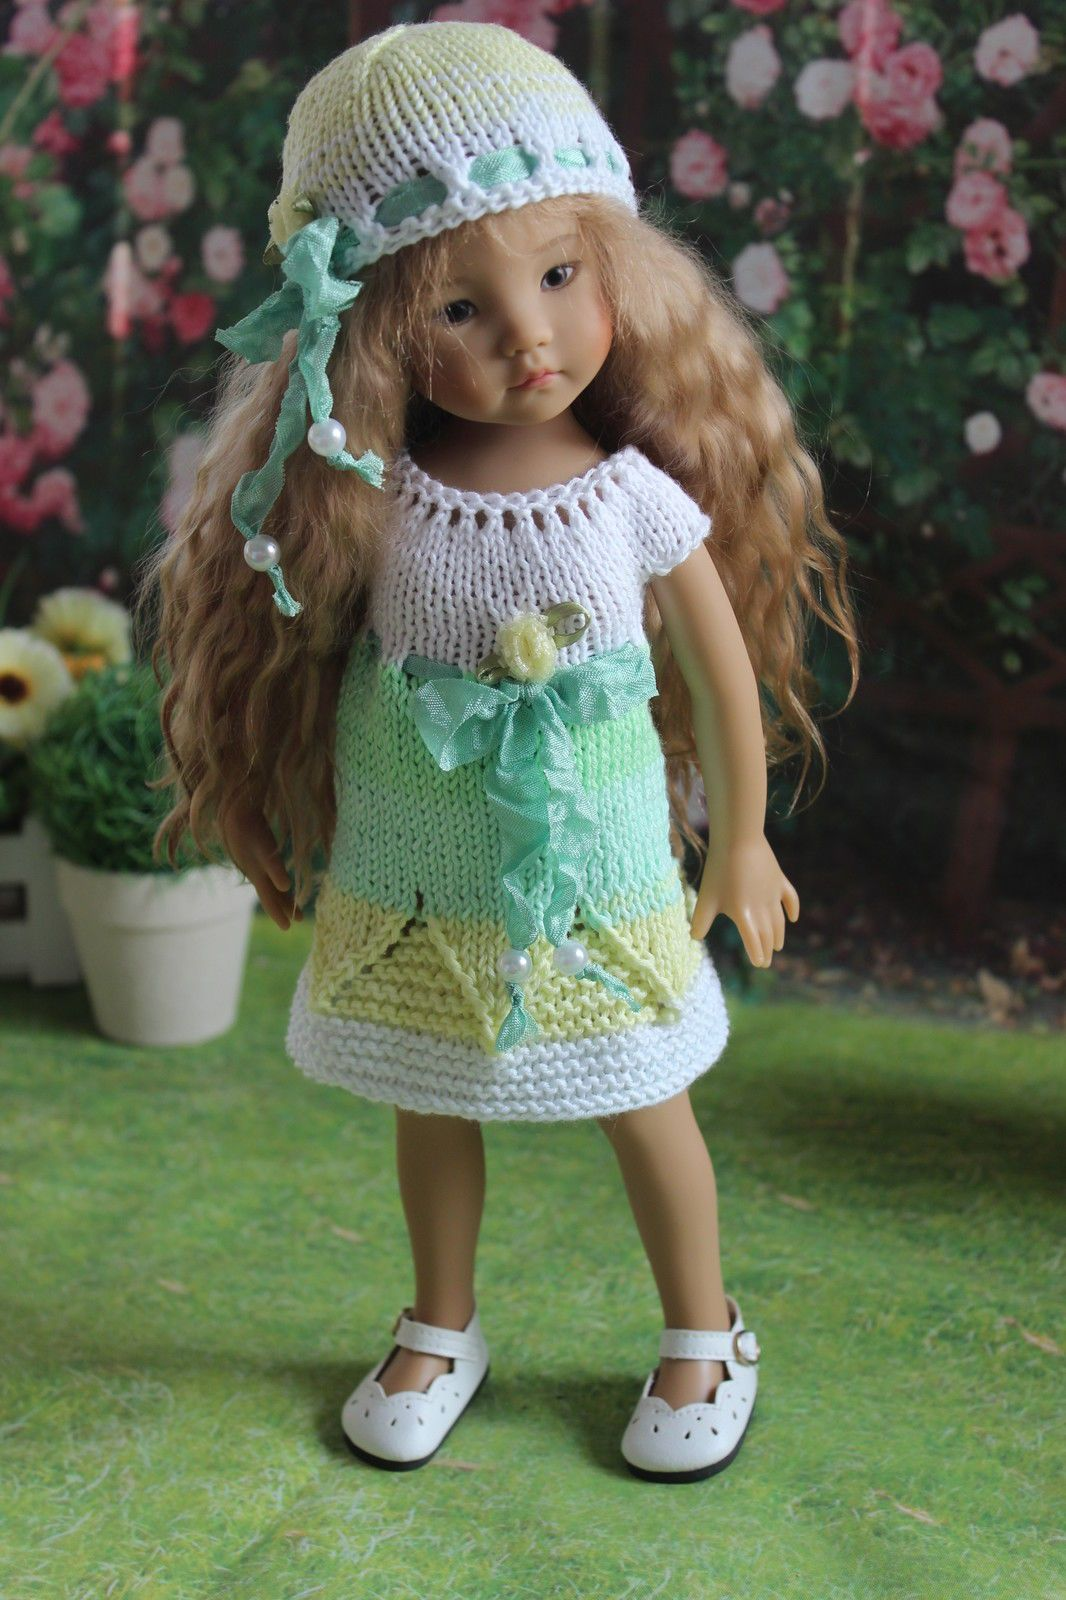 "OOAK наряд для работы 13 ""Dianna EFFNER LITTLE DARLING. in Dolls & Bears, Dolls, Clothes & Accessories, Modern, Other Modern Doll Clothing 